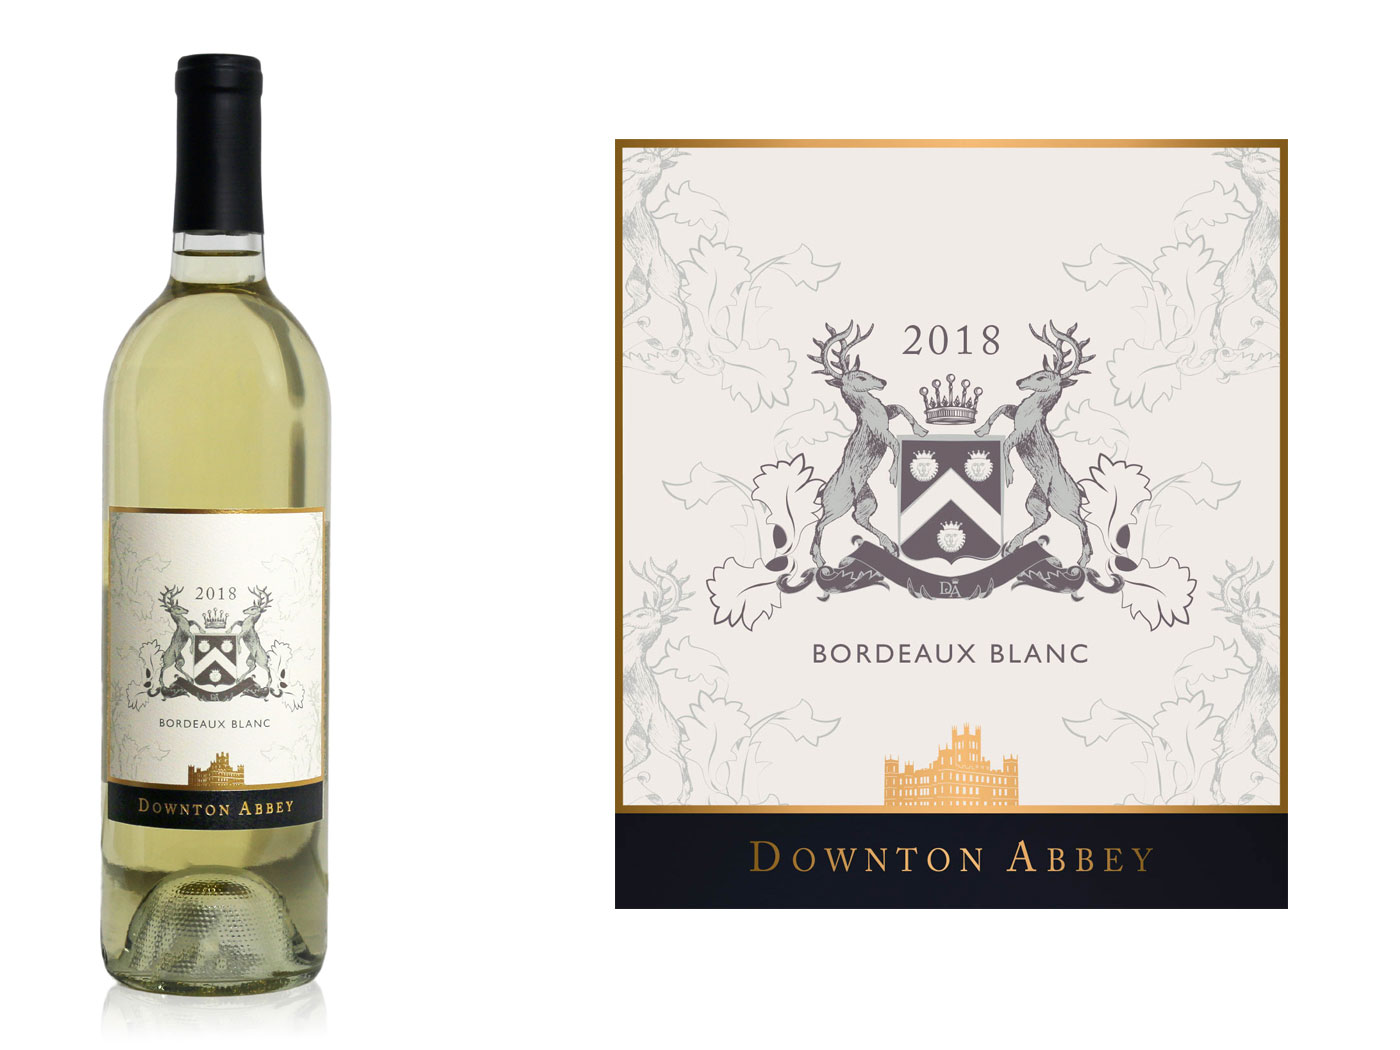 downton-abbey-movie-white-wine-FT-BLOG0919.jpg